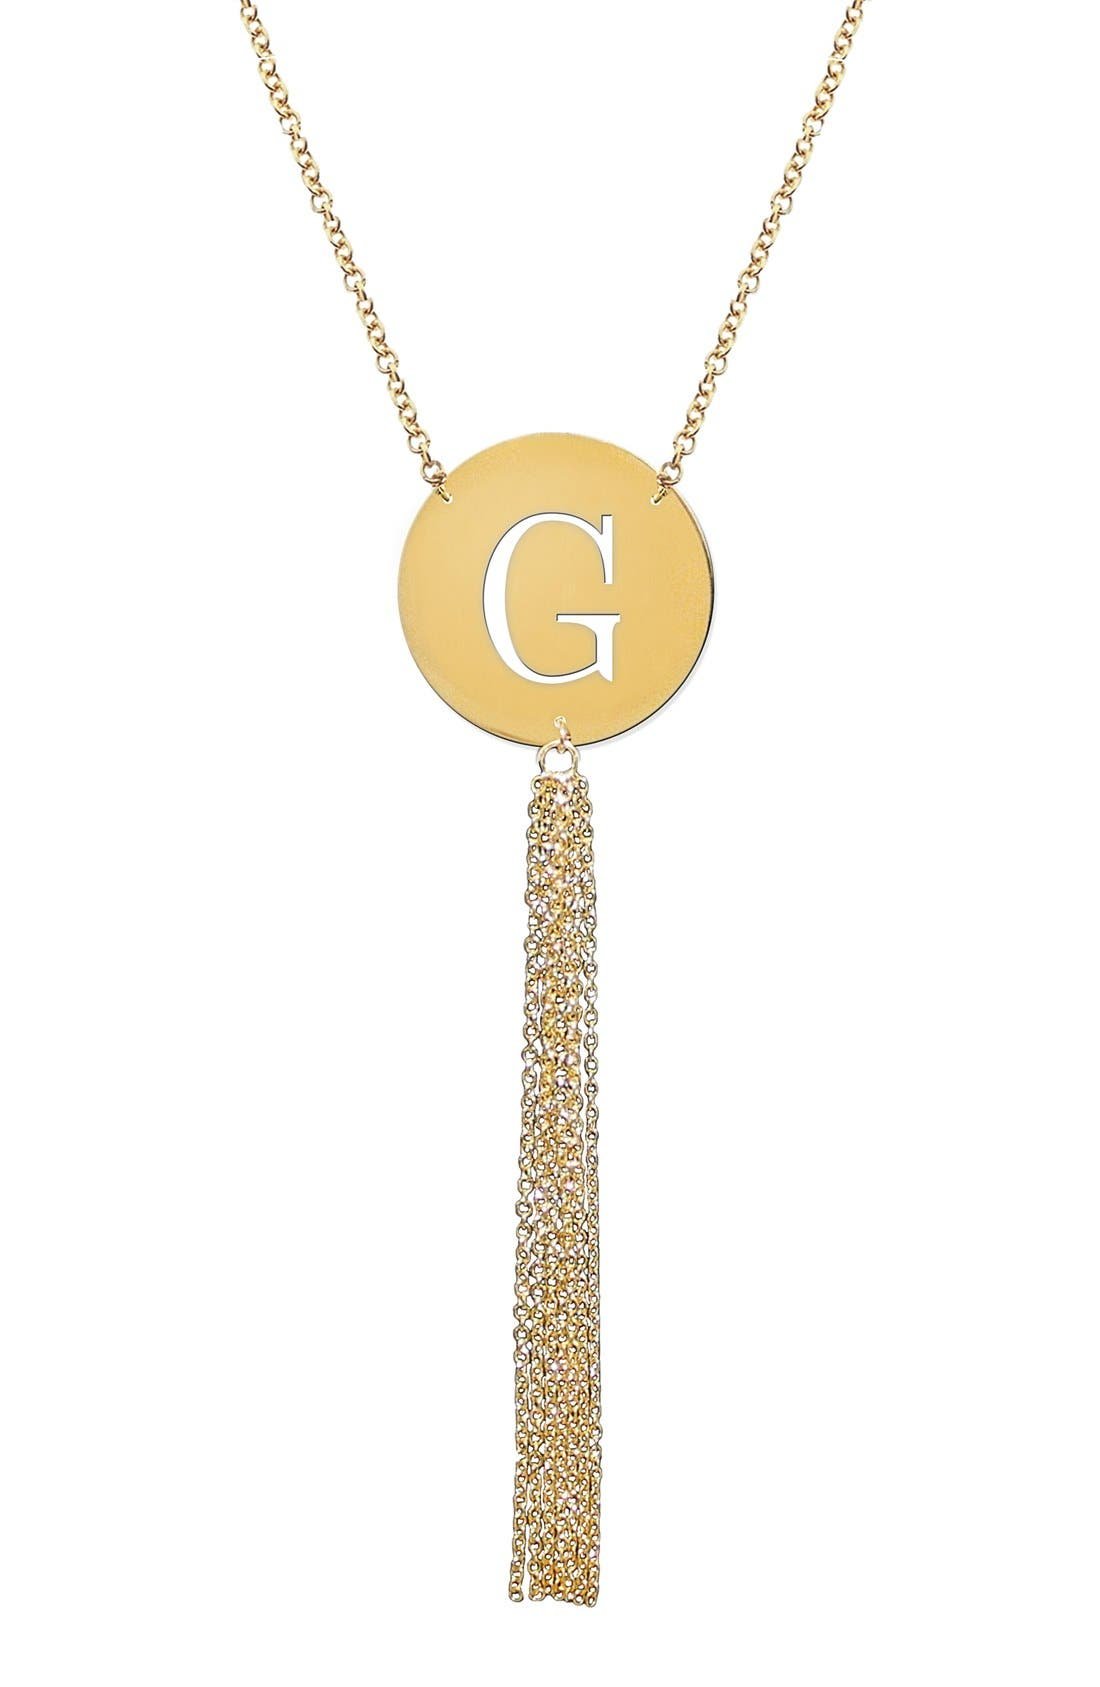 Alternate Image 1 Selected - Jane Basch Designs Initial Tassel Pendant Necklace